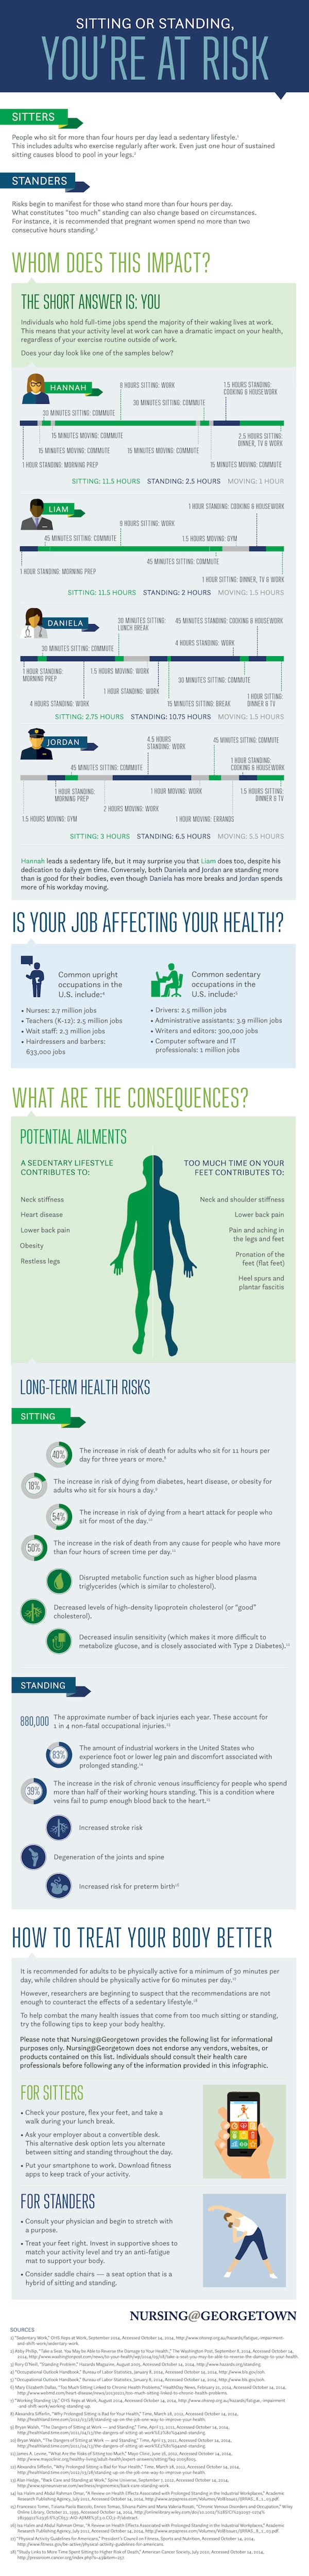 Sitting or Standing infographic